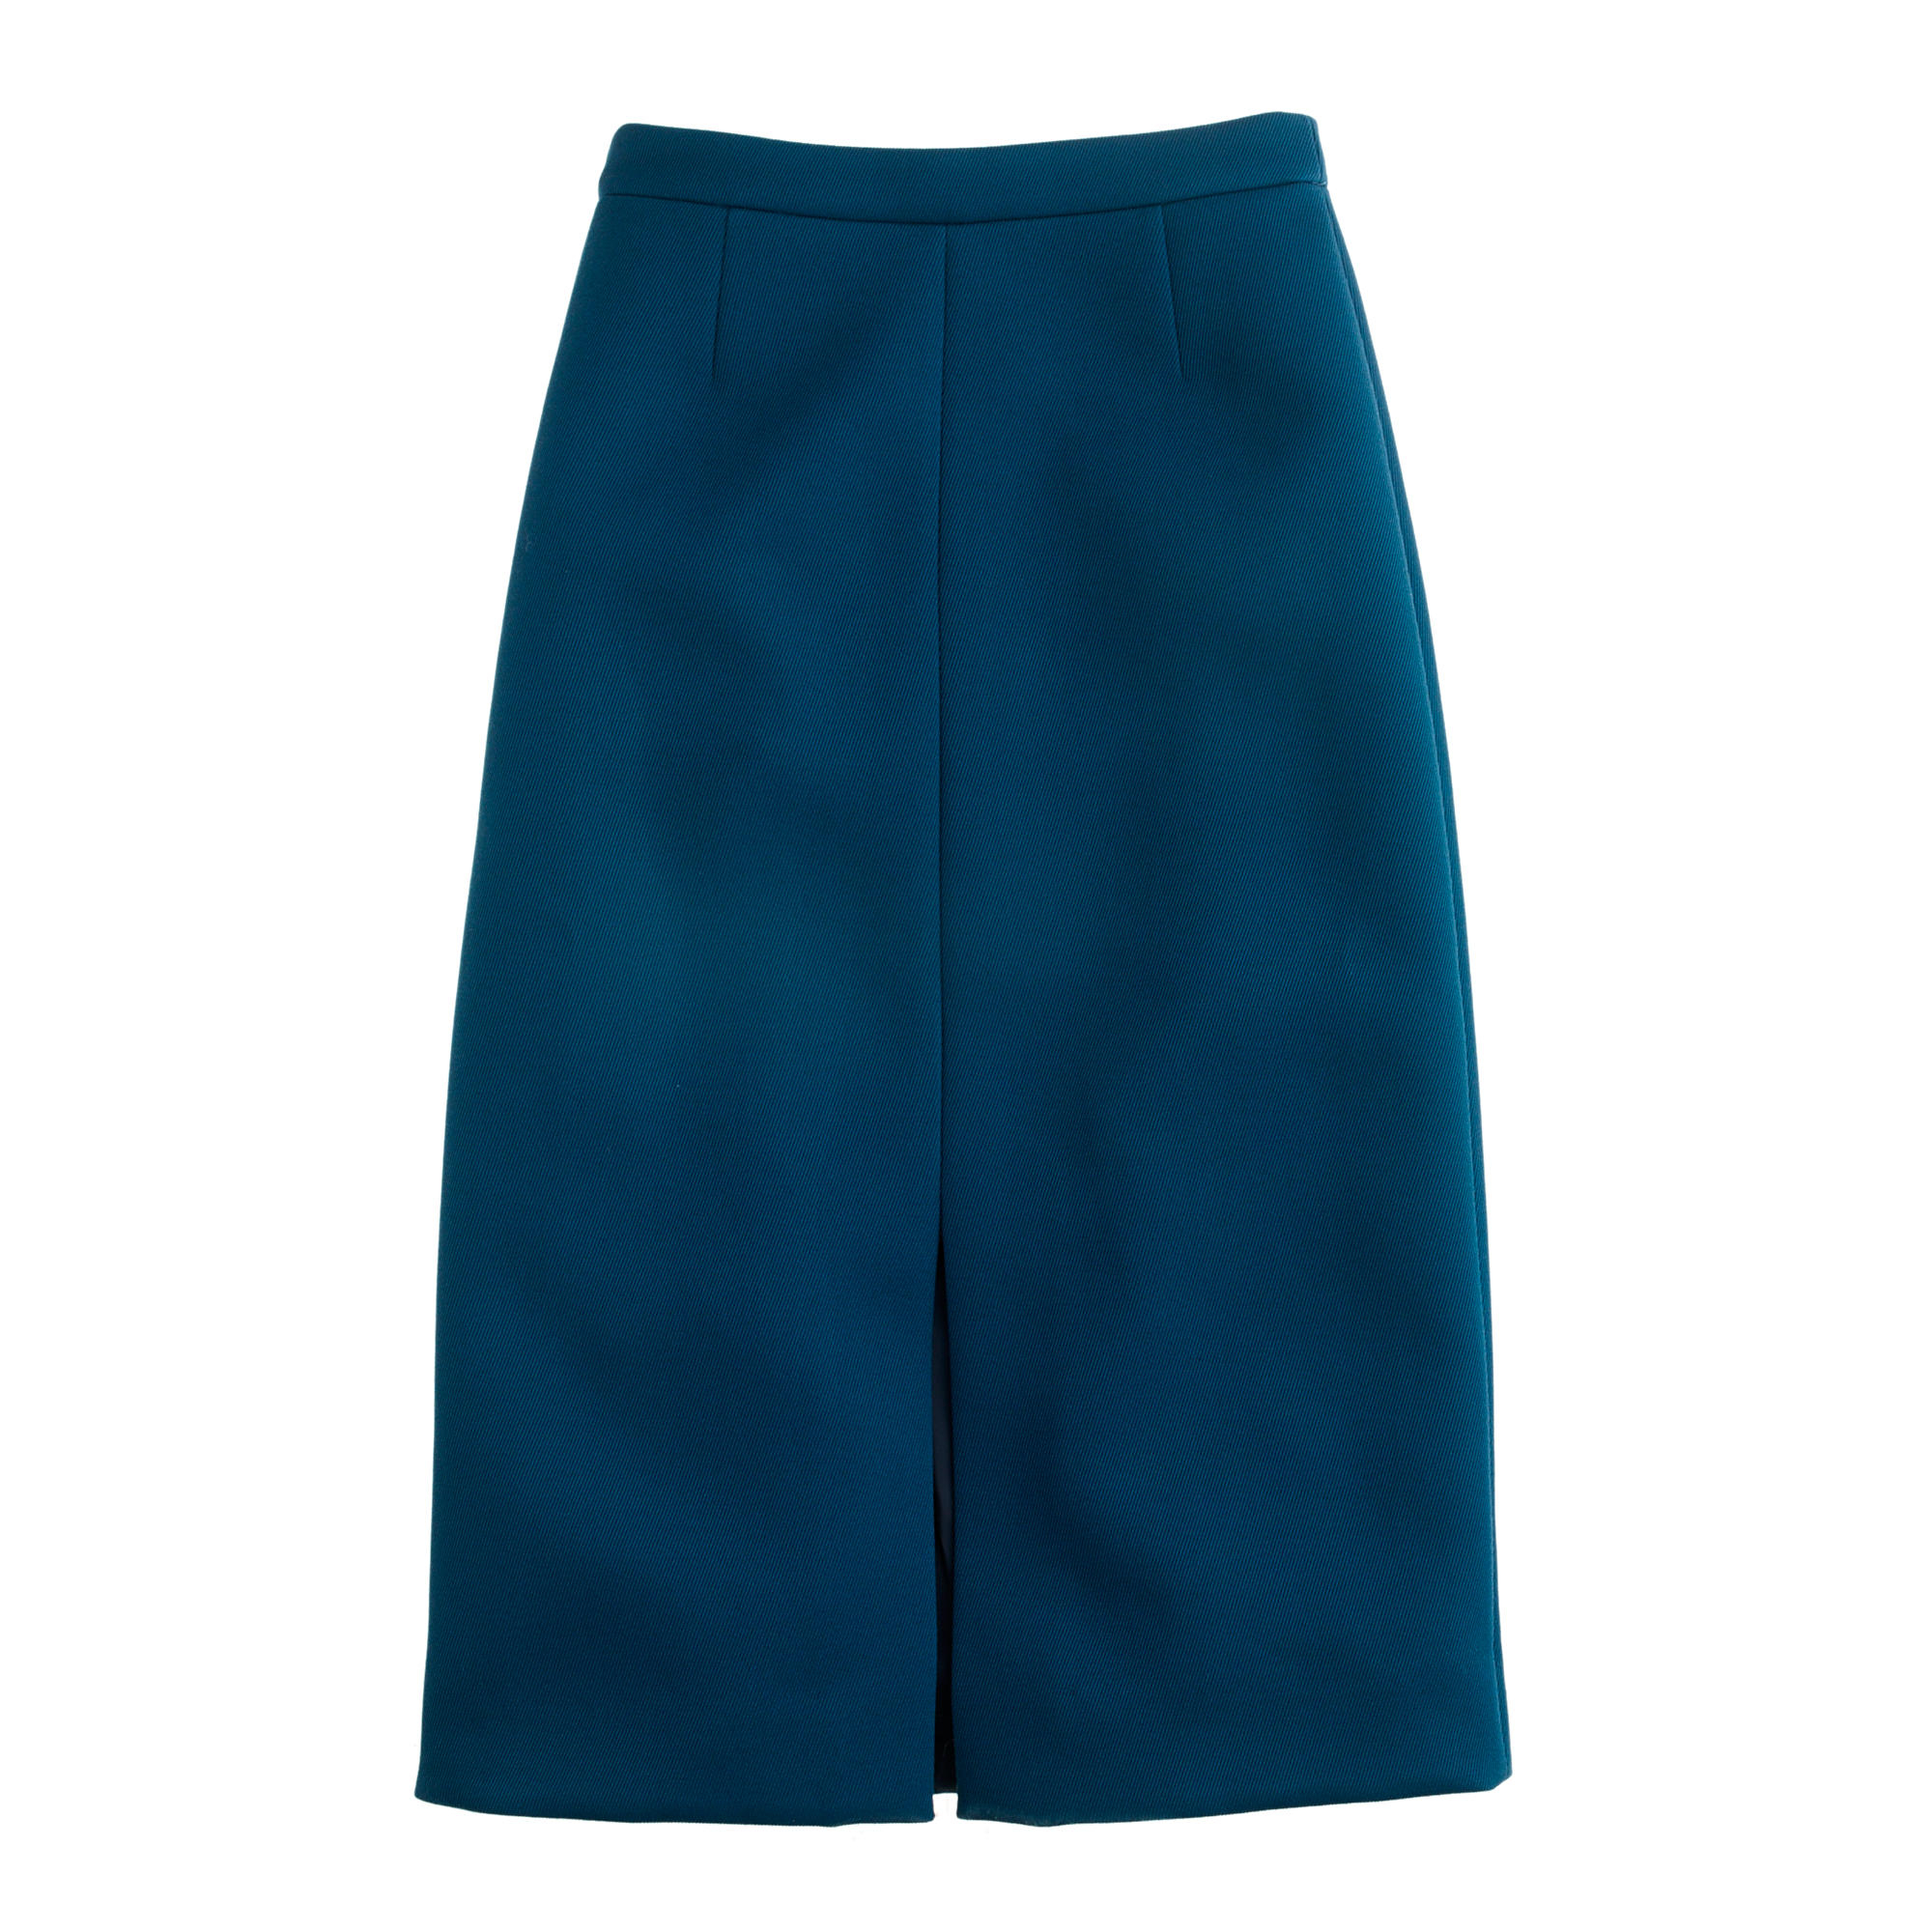 j crew a line skirt in bonded twill in blue lyst